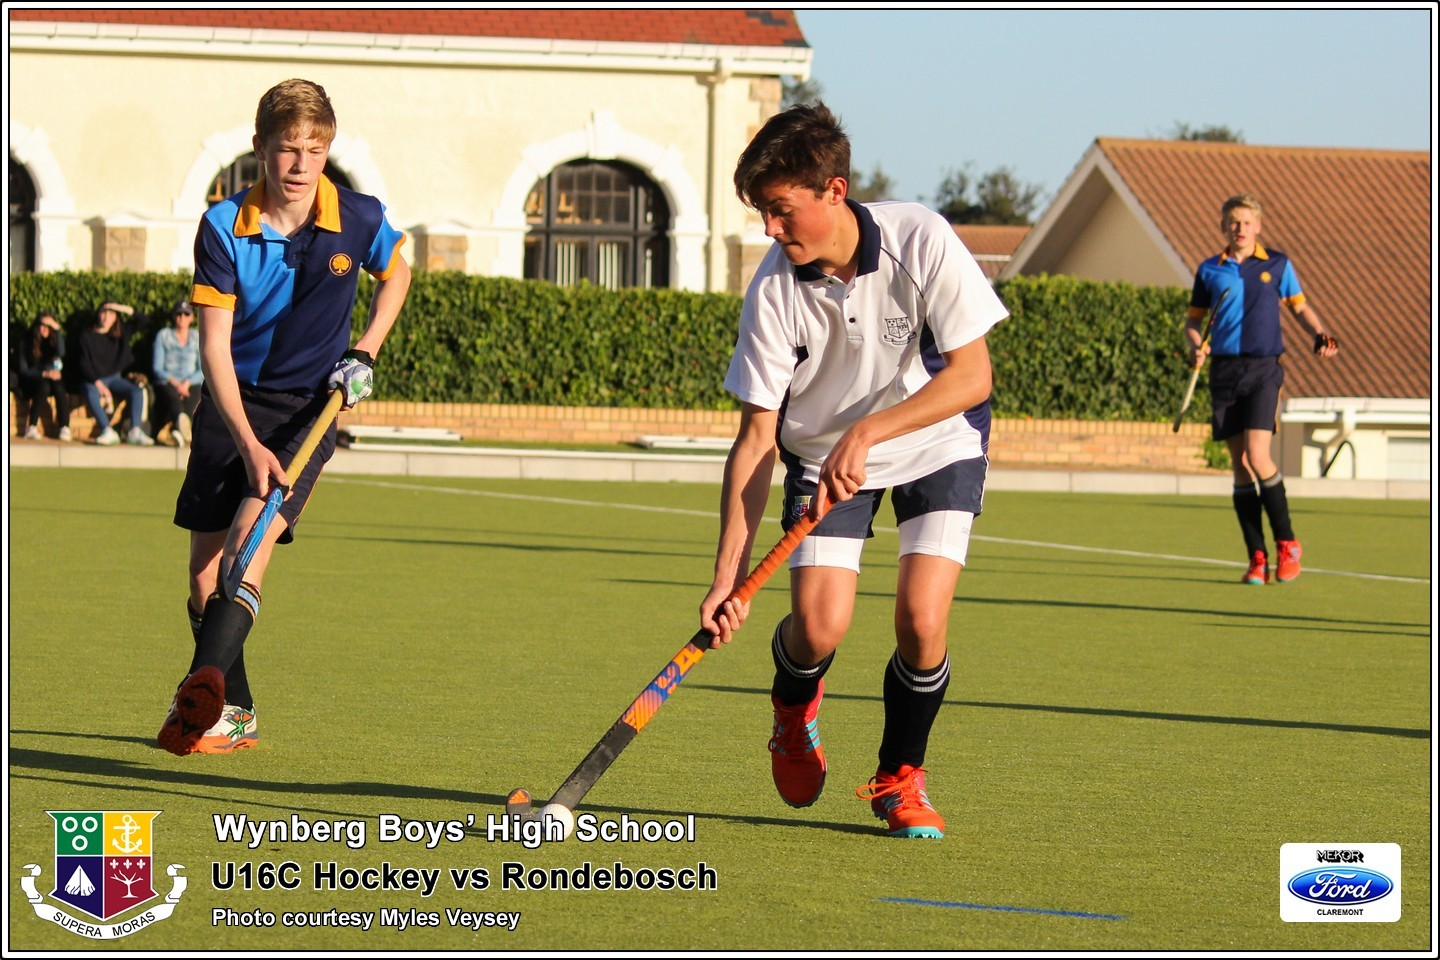 U16C vs Rondebosch U15A, Friday 3 August 2018